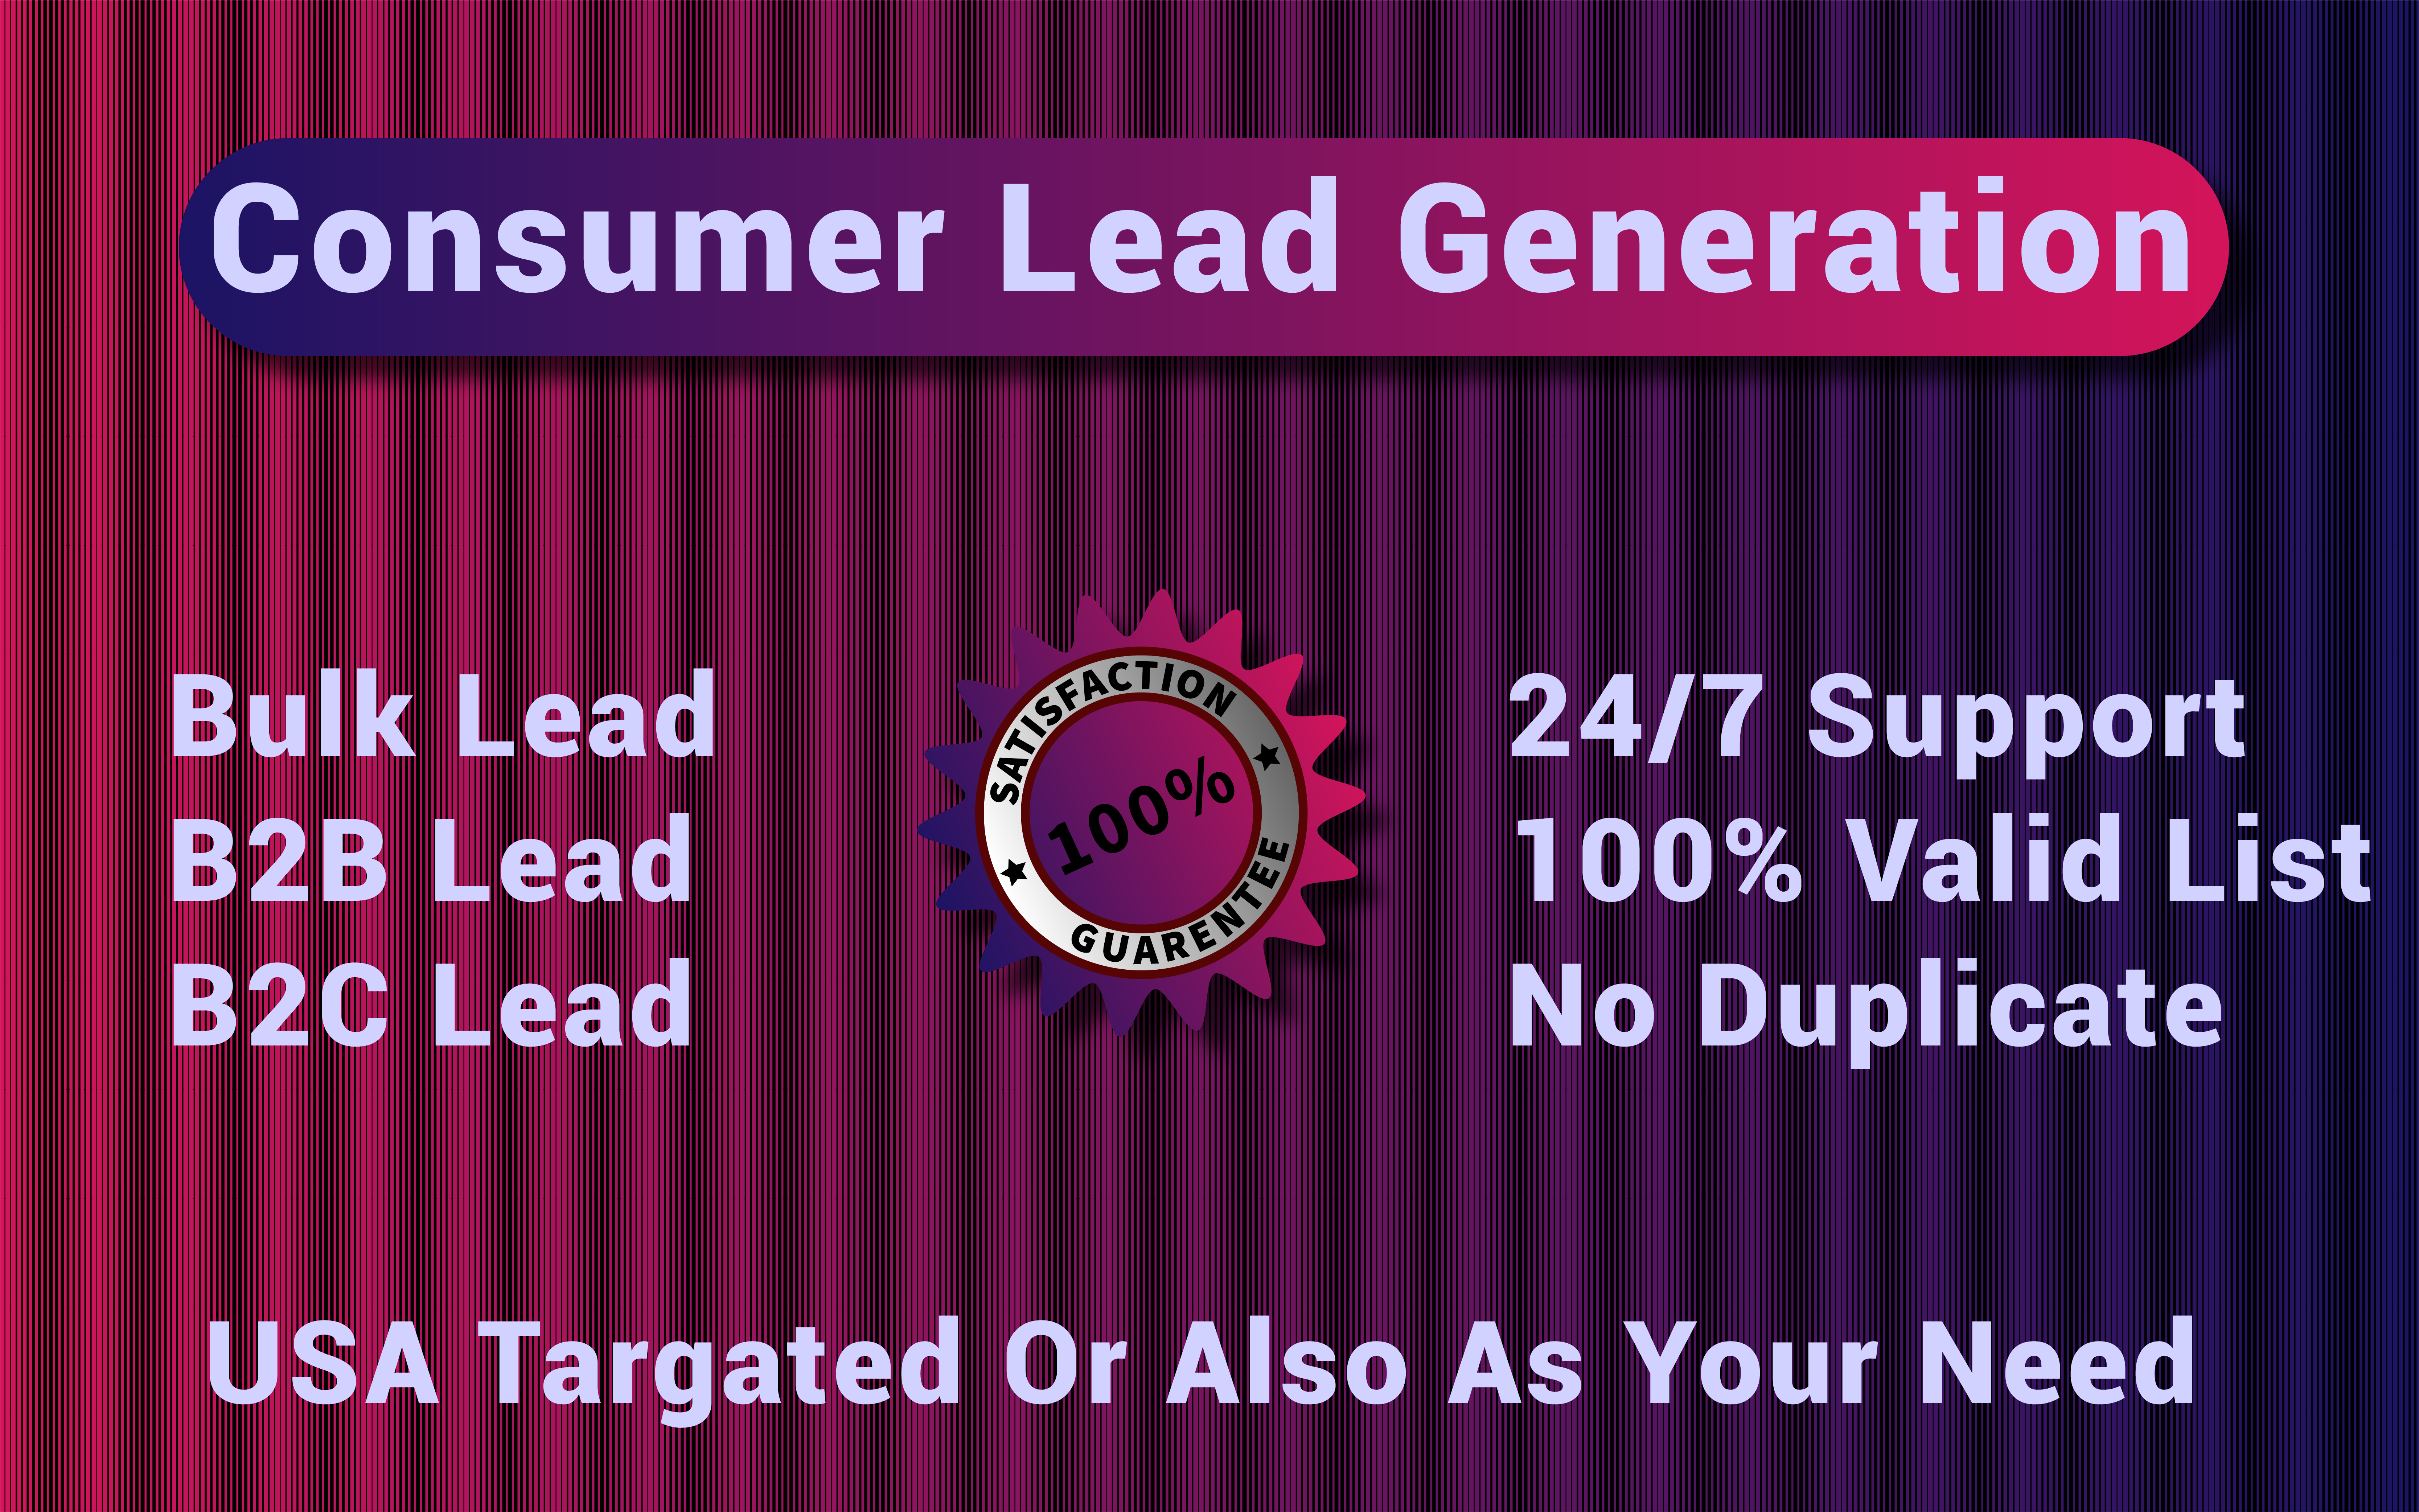 I Will Be Your Next USA Lead Generation Collector For Your Business Or Any Other Purpose